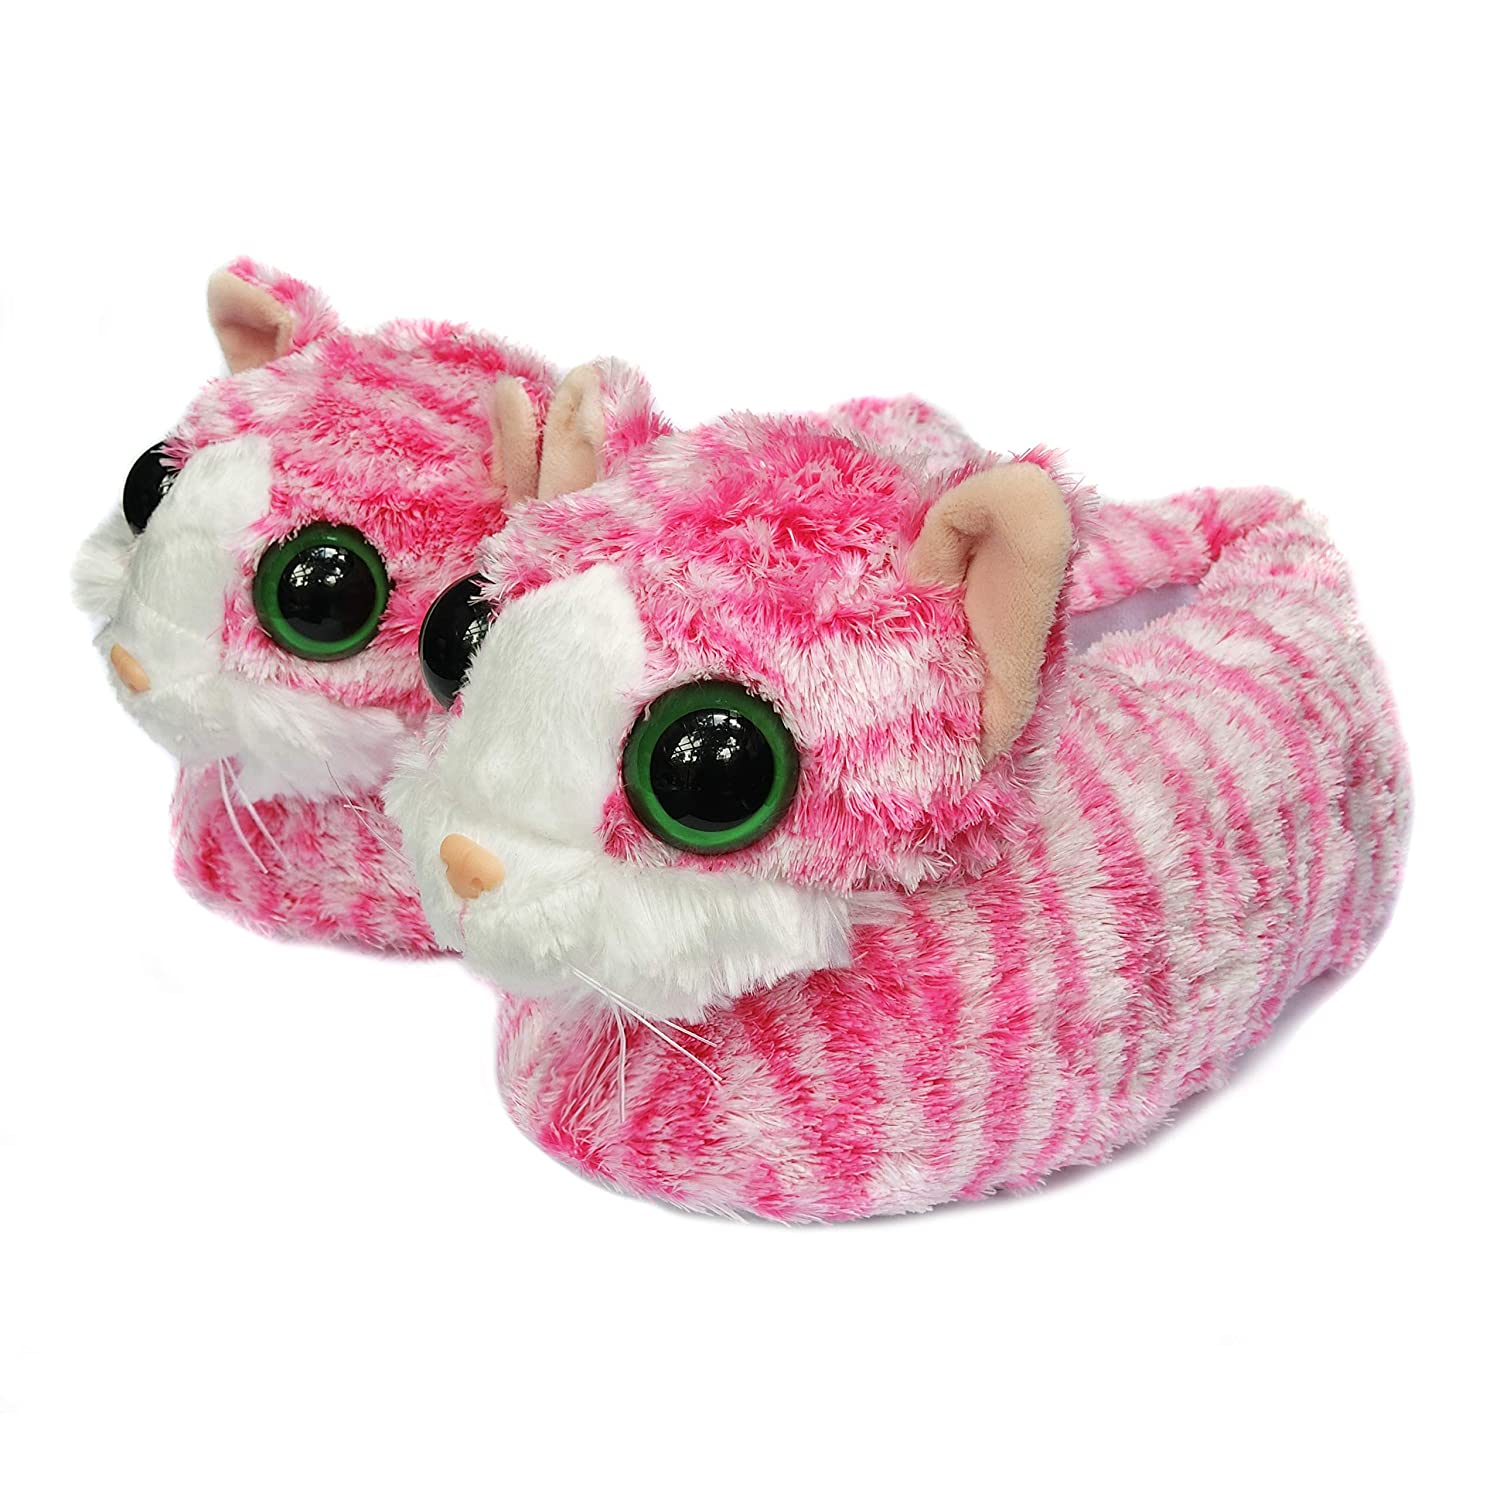 Onmygogo Indoor Fuzzy Winter Animal Cat Plush Soft Slippers For Men Women and Kid, Lovely Cat With Big Eyes JE-AE52-TO8M